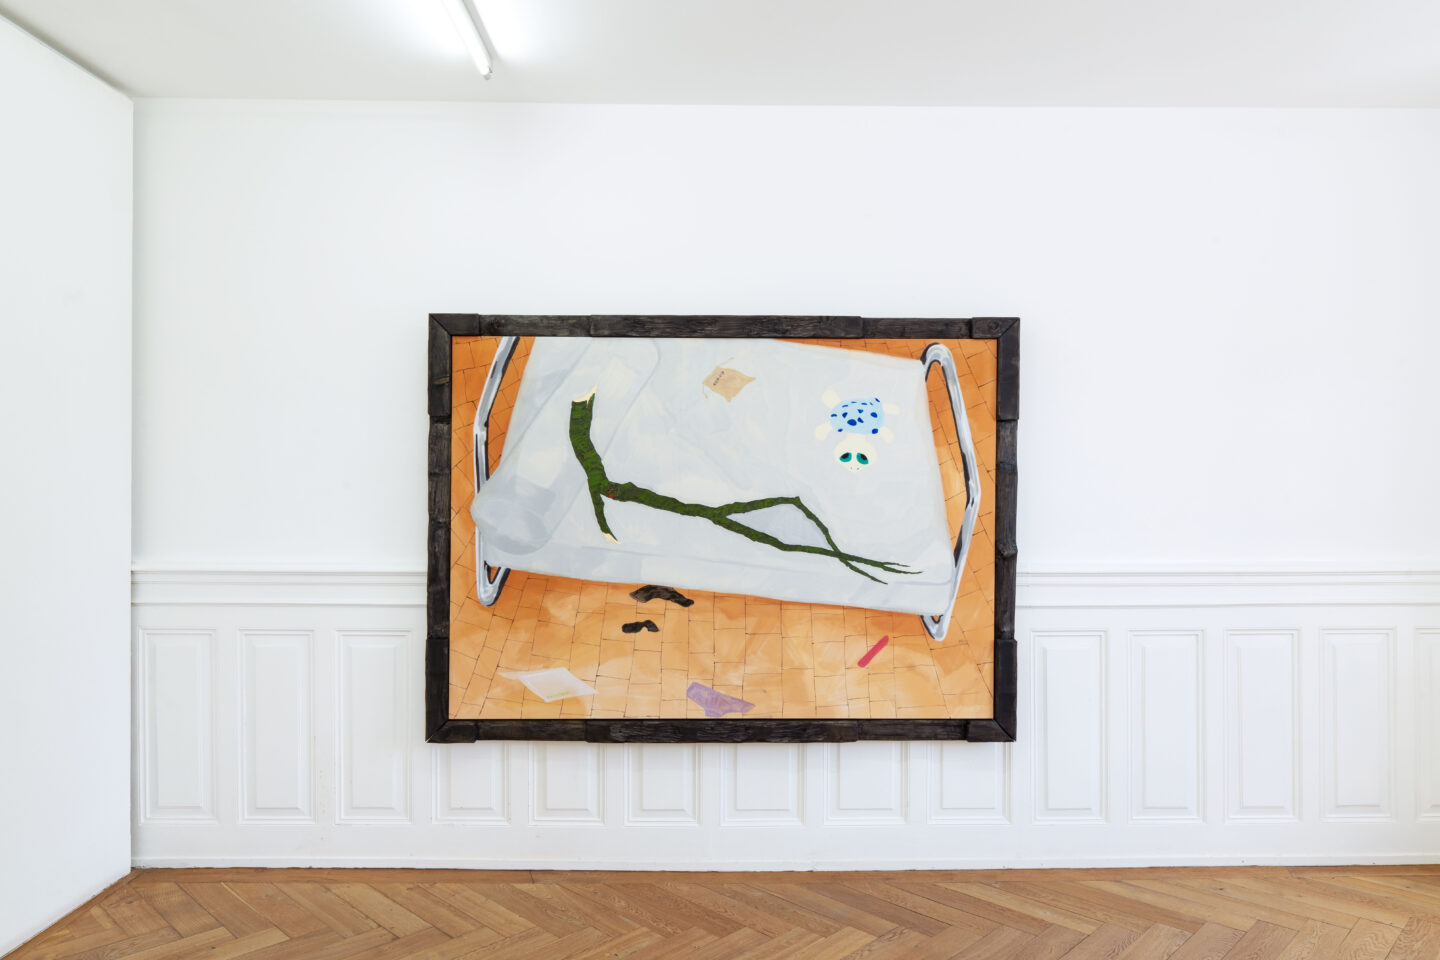 Exhibition View Groupshow «Soft Shell; view on Ivan Mitrovic» at Kunsthaus Langenthal, Langenthal, 2020 / Photo: CE / Courtesy: the artists and Kunsthaus Langenthal